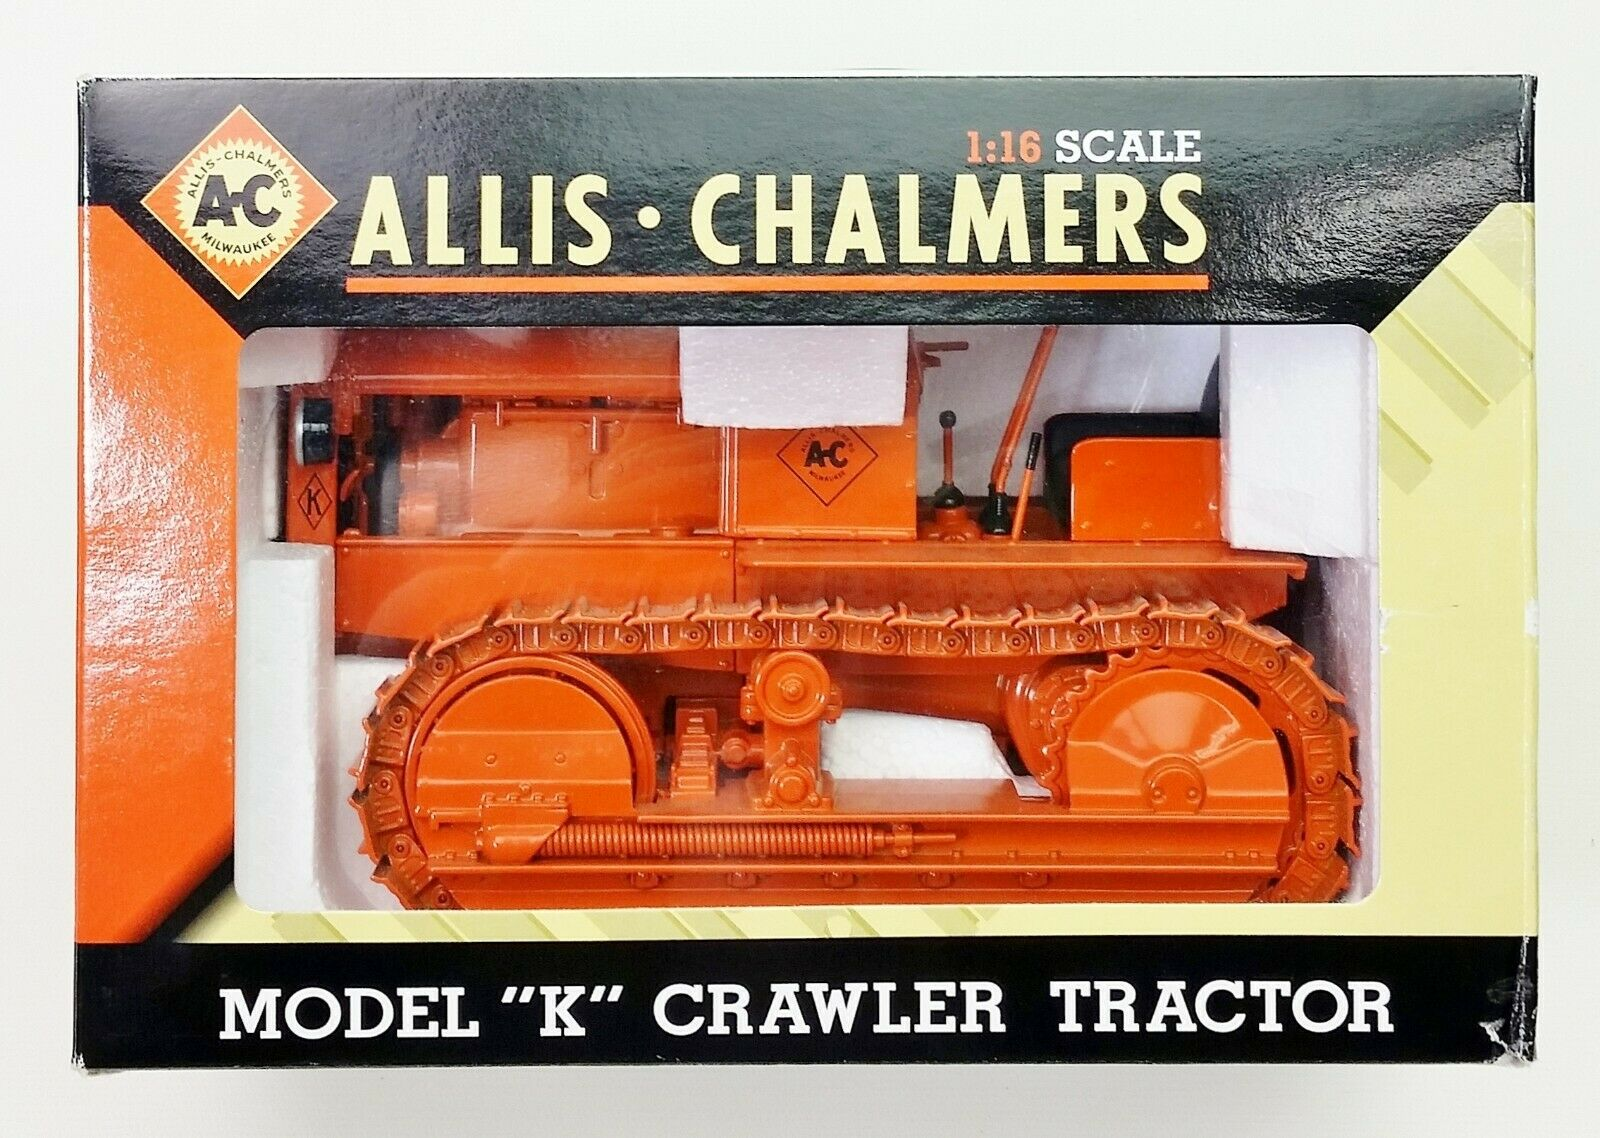 Allis Chalmers Milwaukee Model K Crawler Tractor 1 16 Acale SpecCast NIB